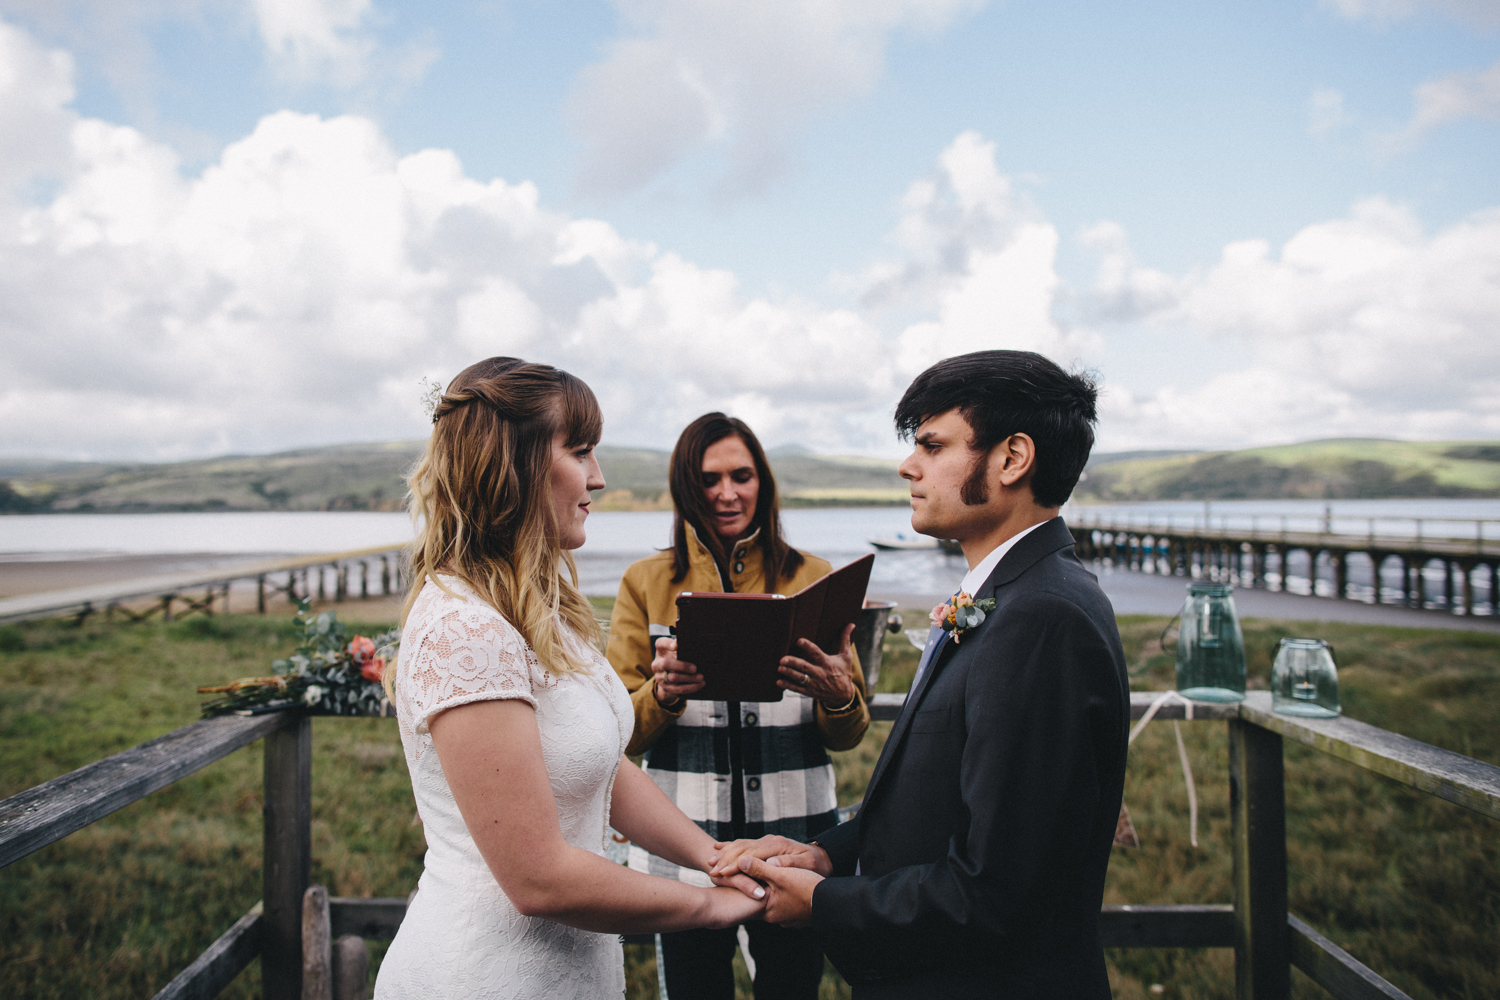 Point Reyes Inverness Wedding Photographer Rachelle Derouin-41.jpg